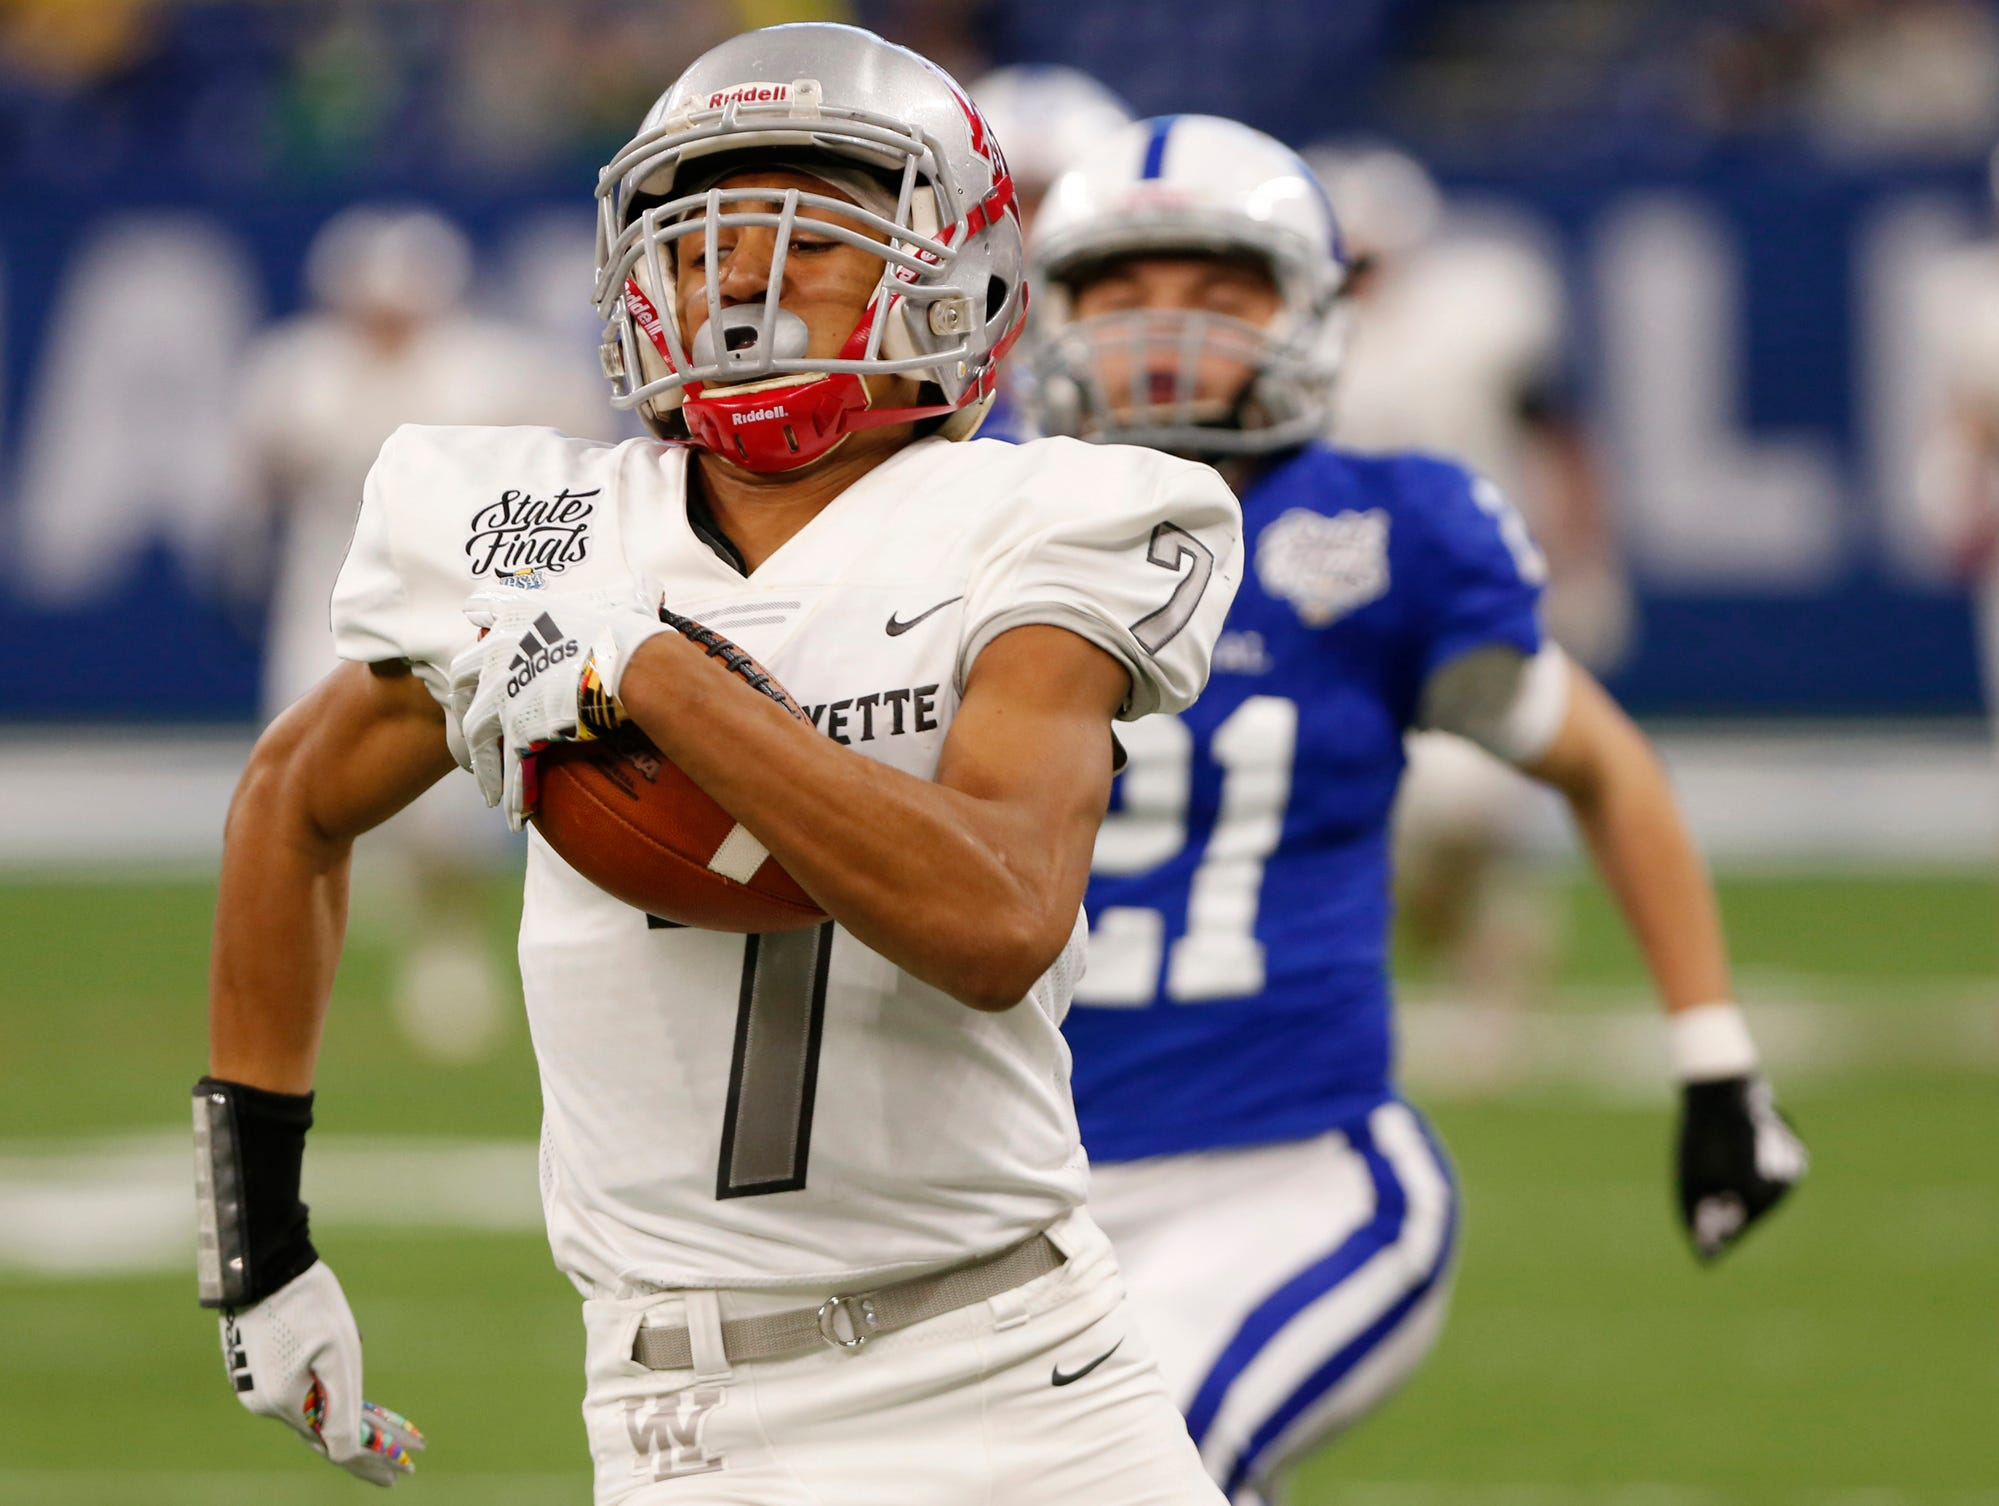 Kyle Hazell races to the end zone on a touchdown reception at 9:11 in the first quarter against Evansville Memorial in the Class 3A State Championship Saturday, November 24, 2018, at Lucas Oil Stadium in Indianapolis. West Lafayette defeated Evansville Memorial 47-42 to claim the Class 3A state title.